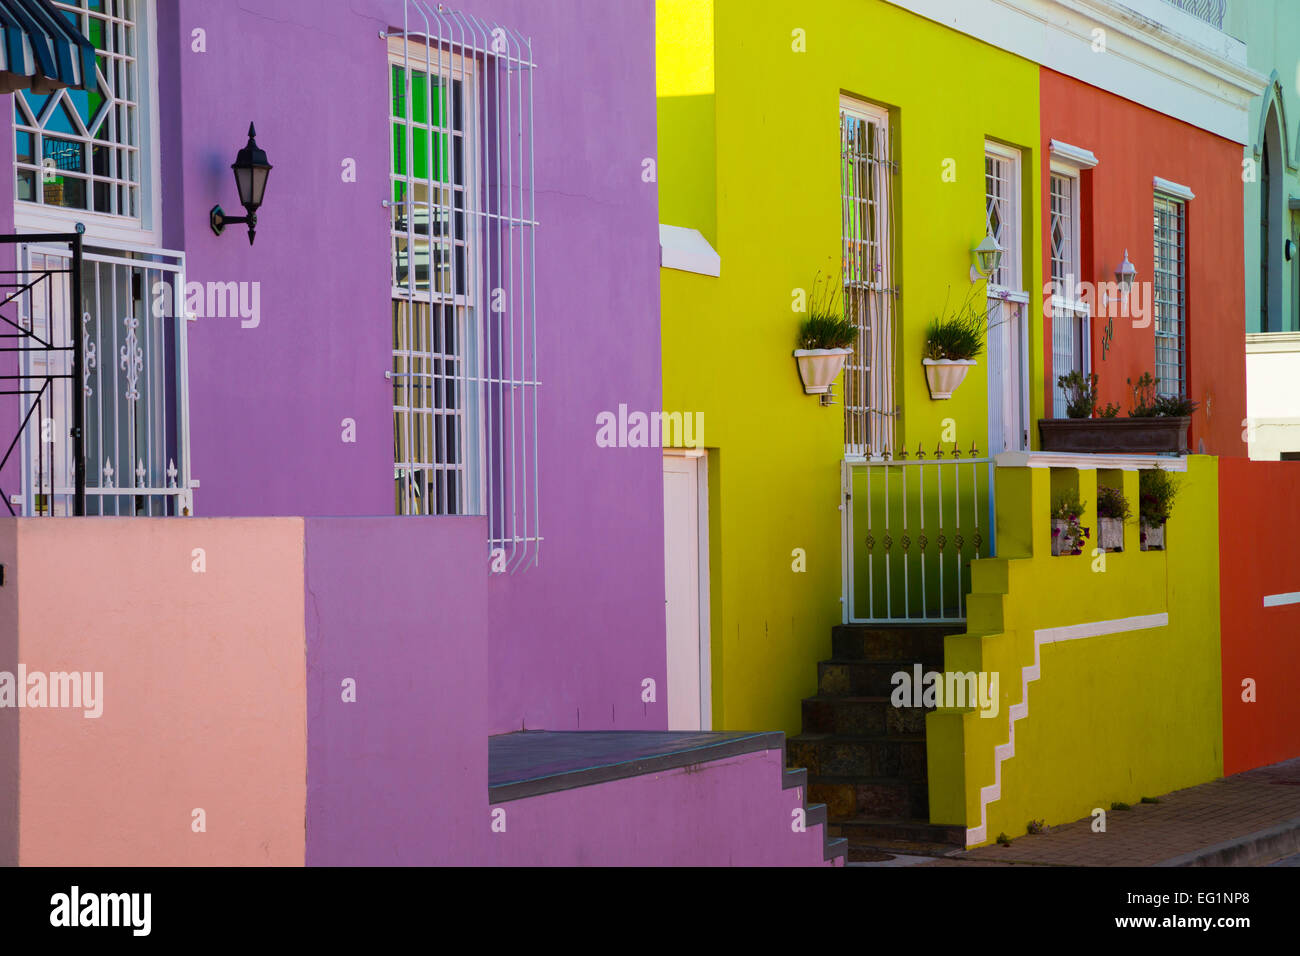 Colourful houses, Bo-Kaap, Malay Quarter Cape Town, South Africa, Africa - Stock Image